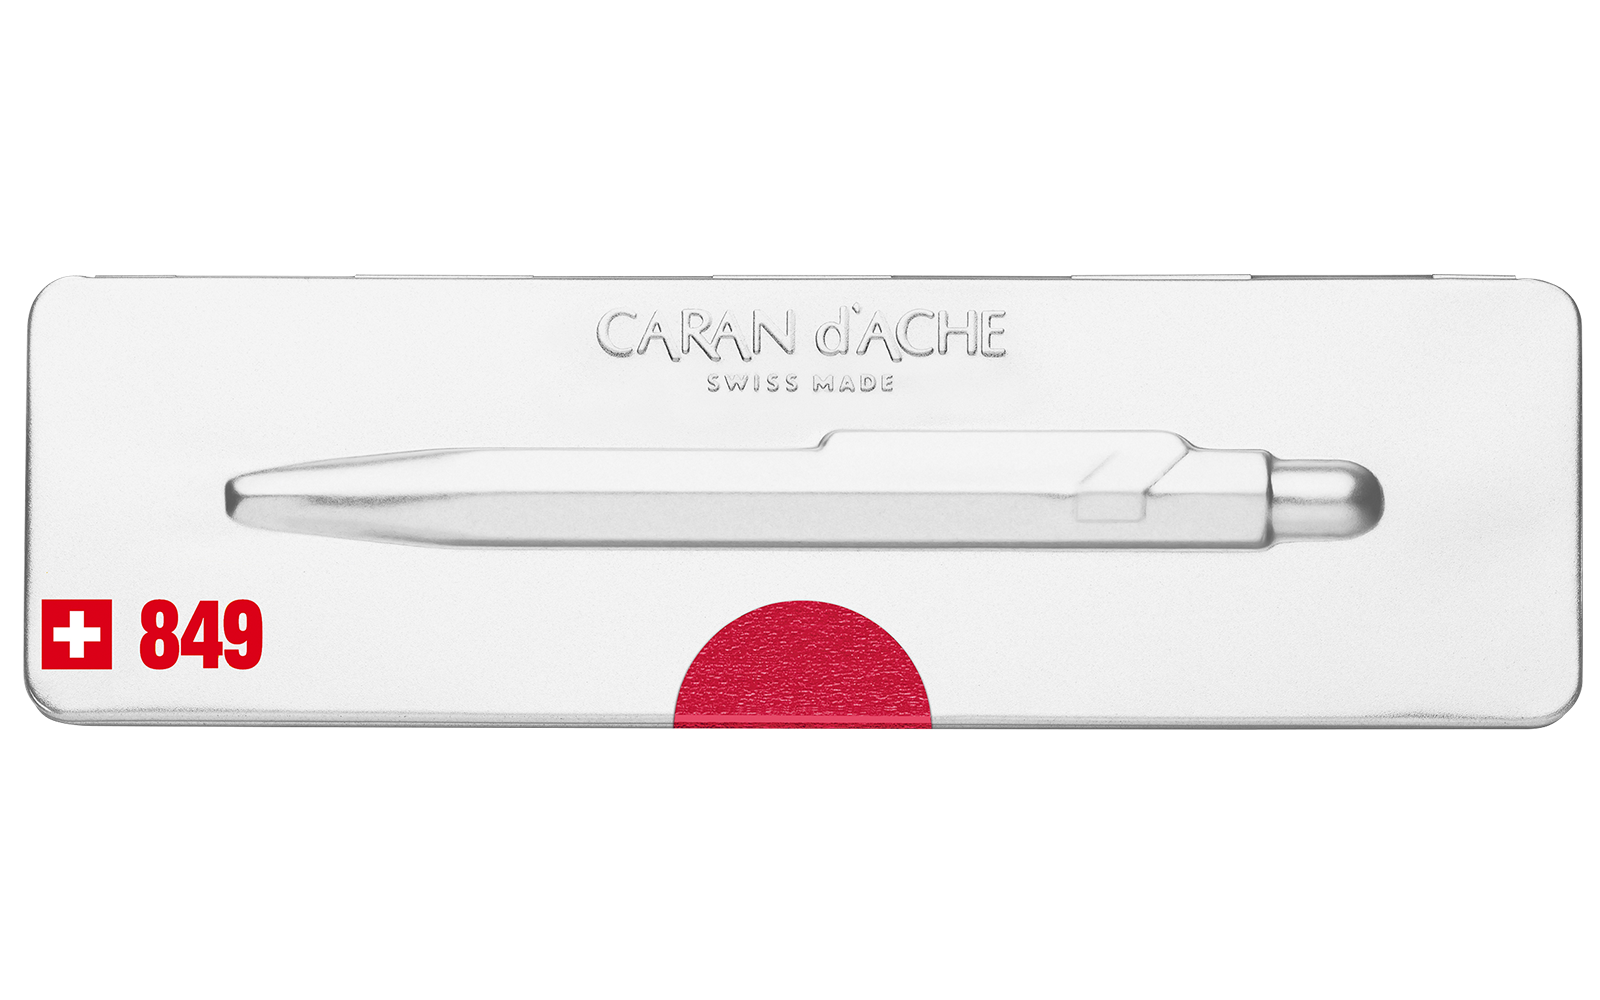 Carandache Office 849 Pop Line - Metallic Red, шариковая ручка, M